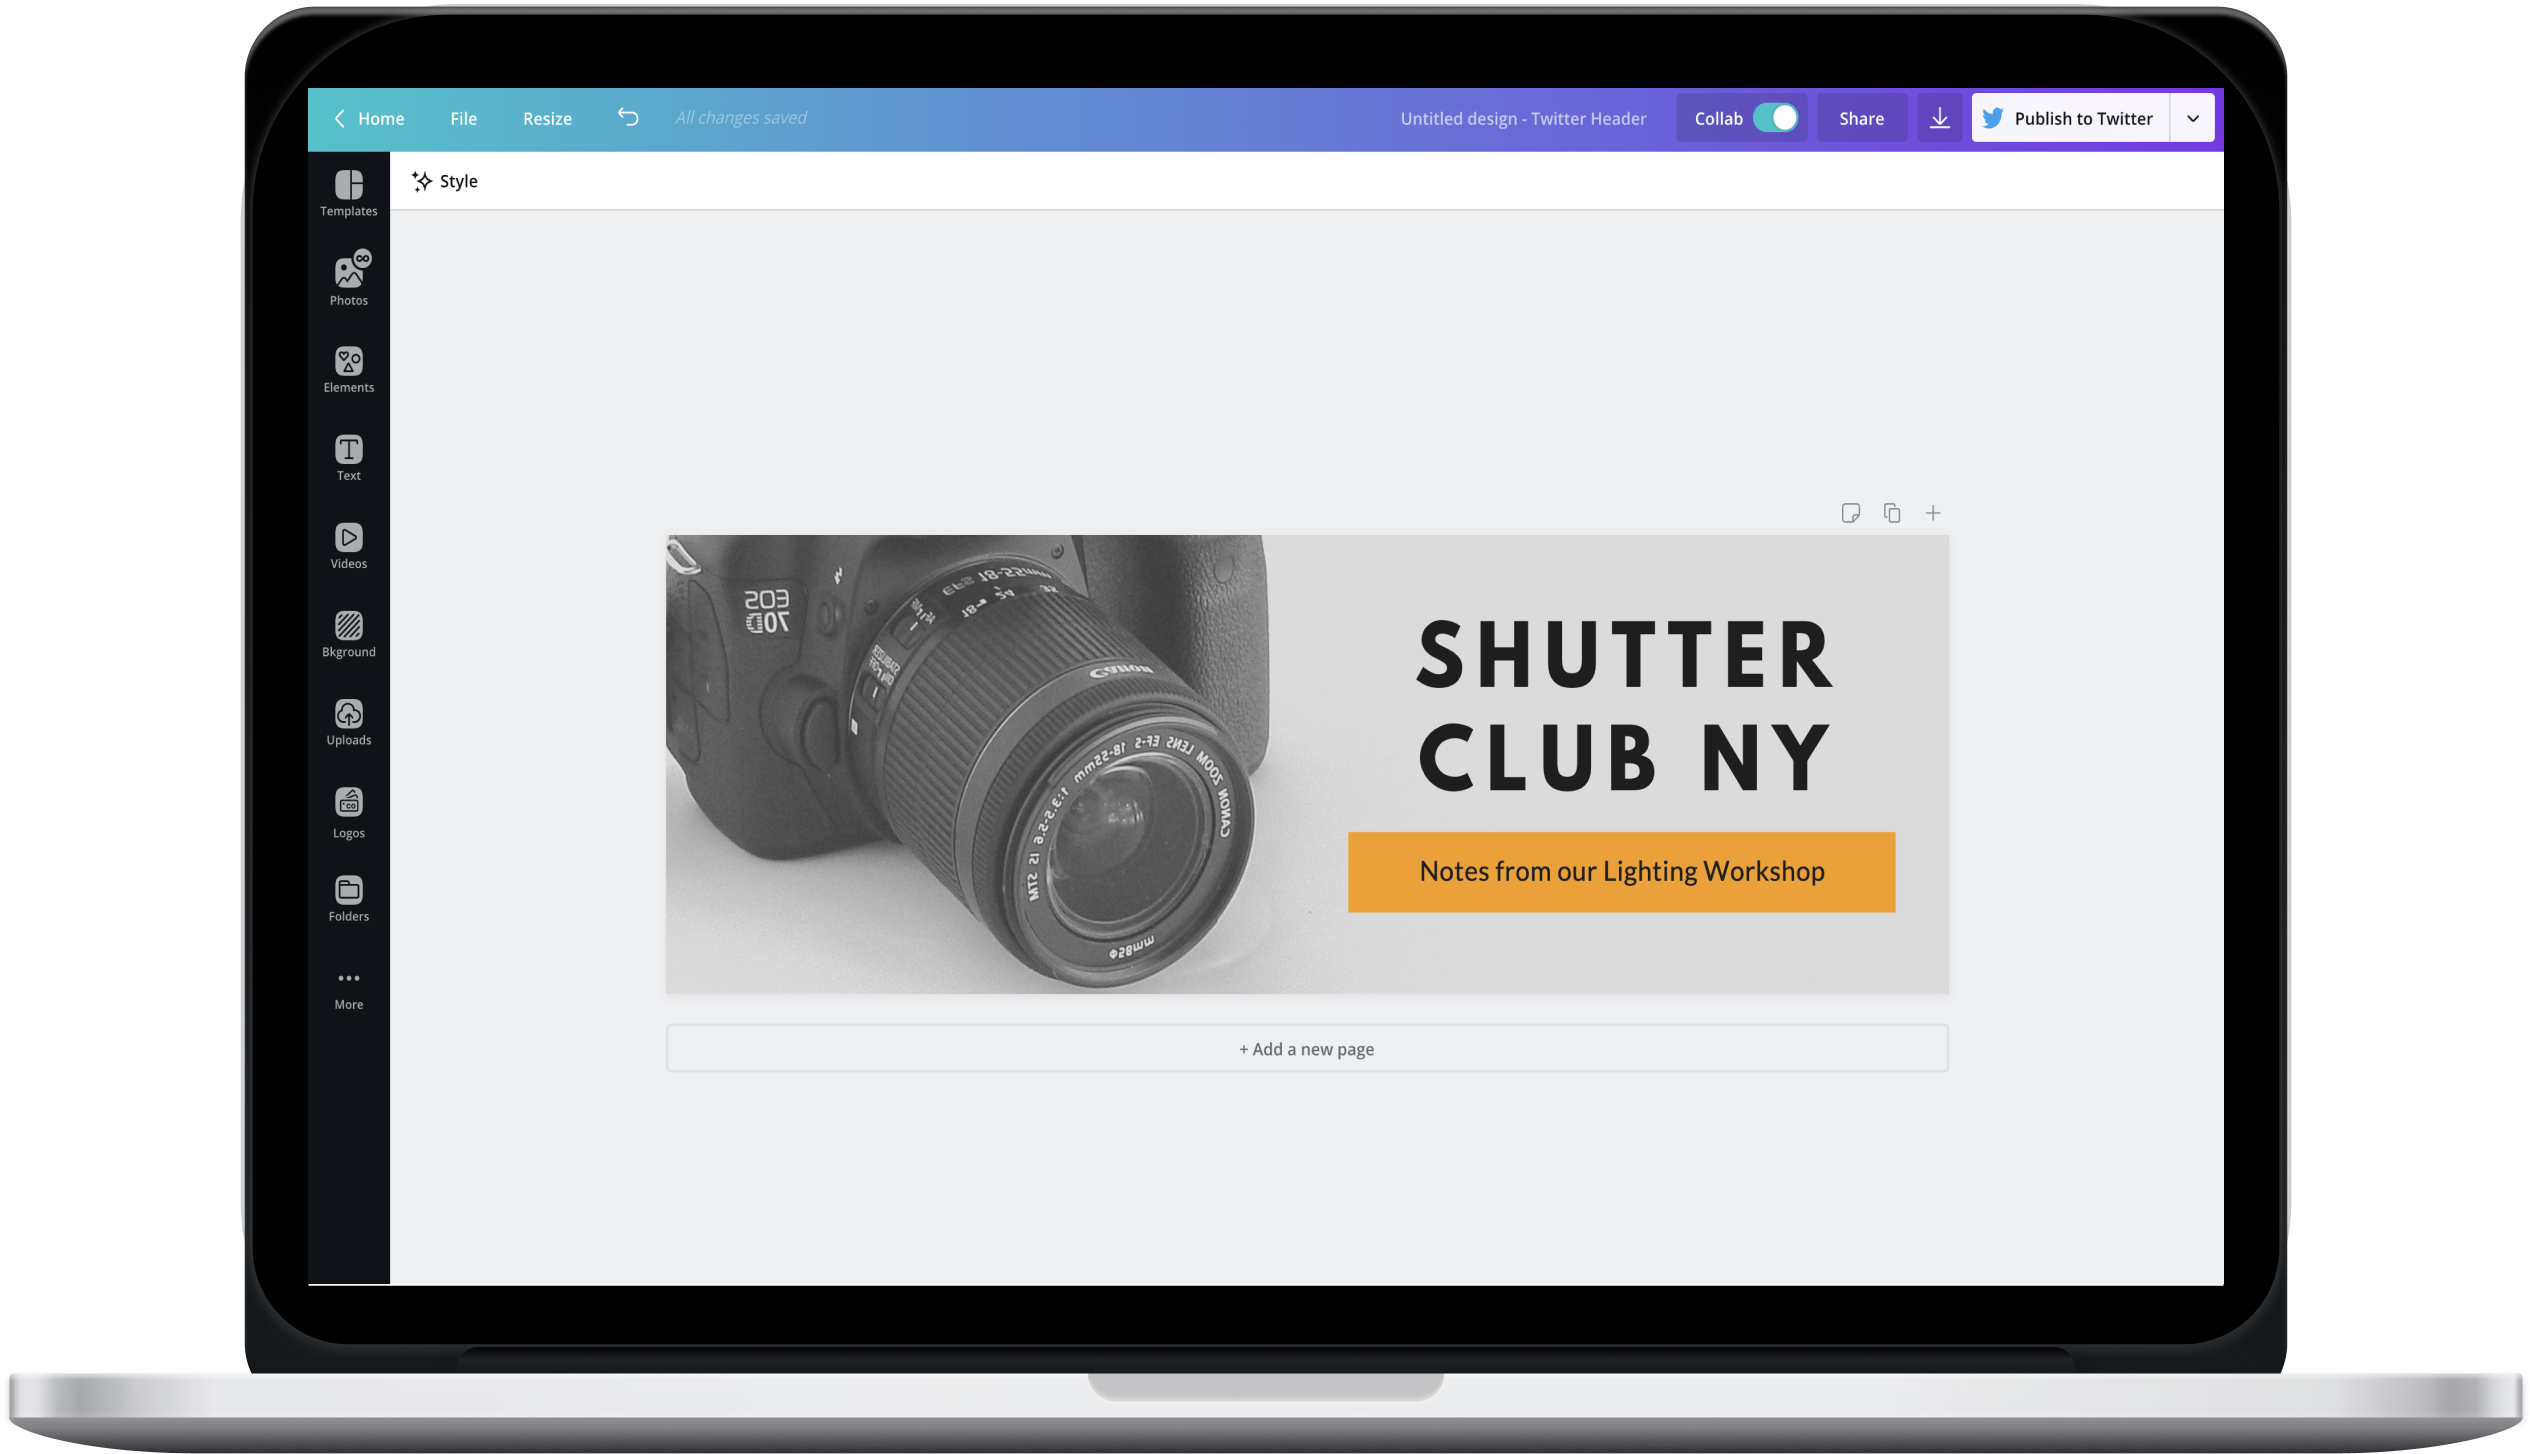 Canva editor showing a photography Twitter header design